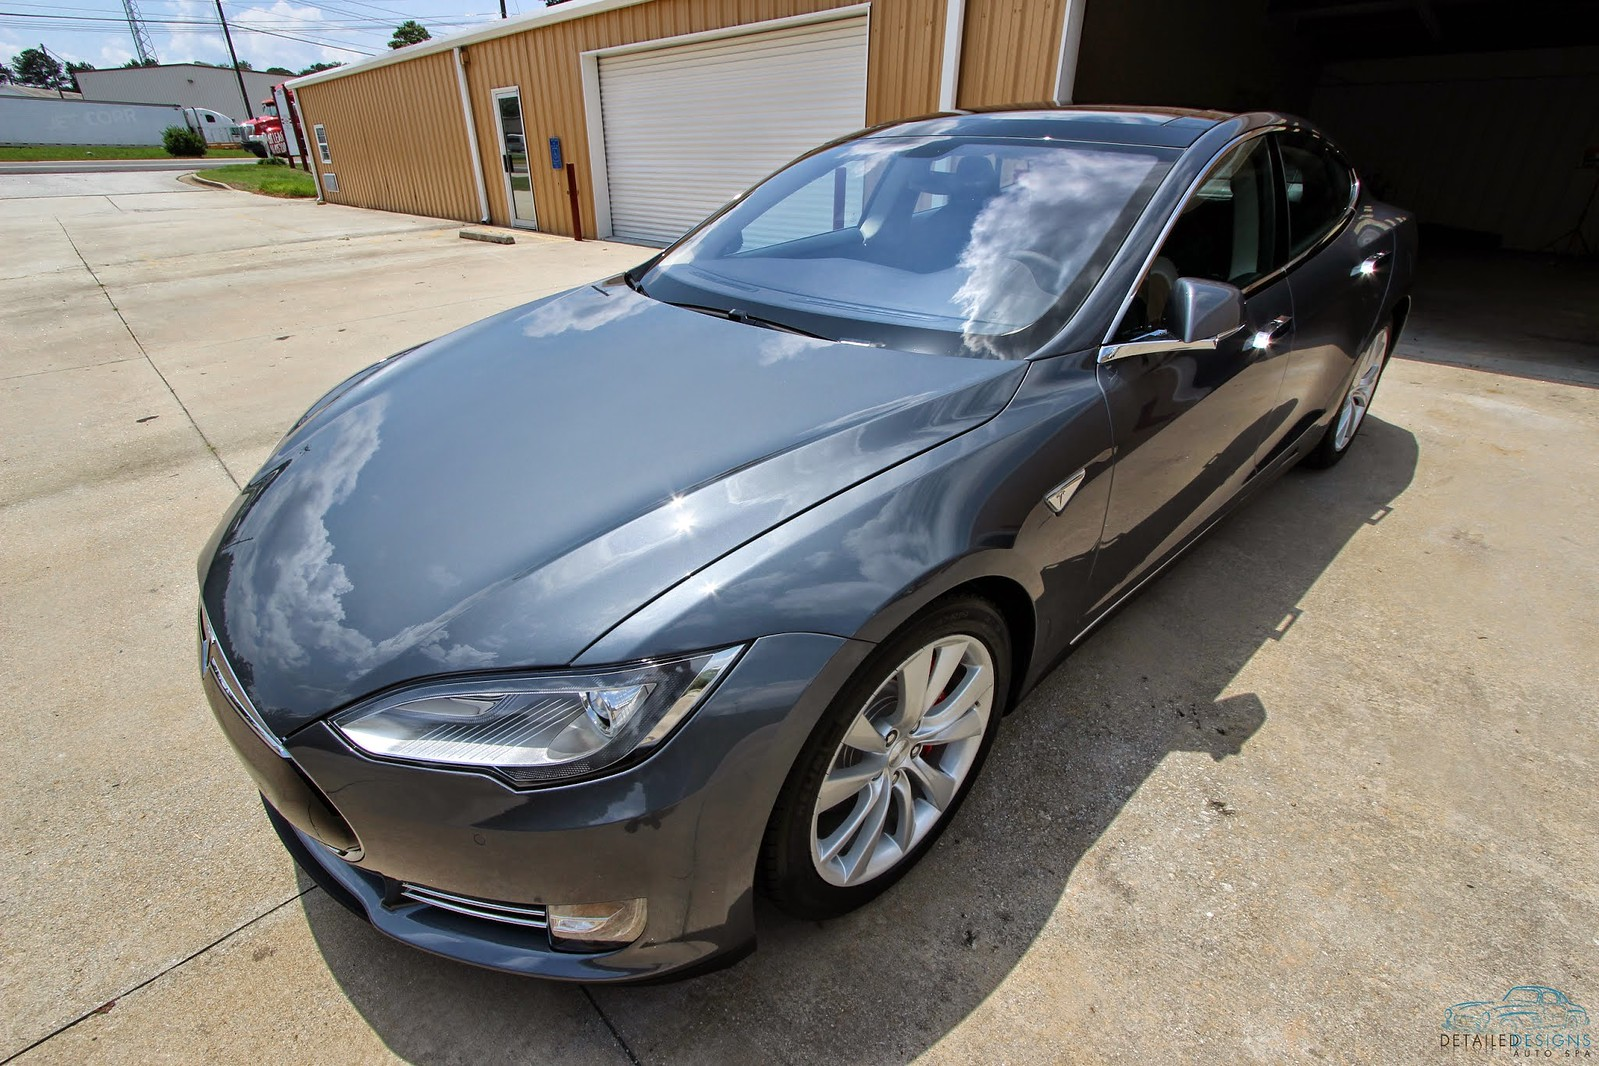 8056bb8f26 Tesla Model S Clear Bra Modesta BC-04 Atlanta Detailed Designs Auto Spa